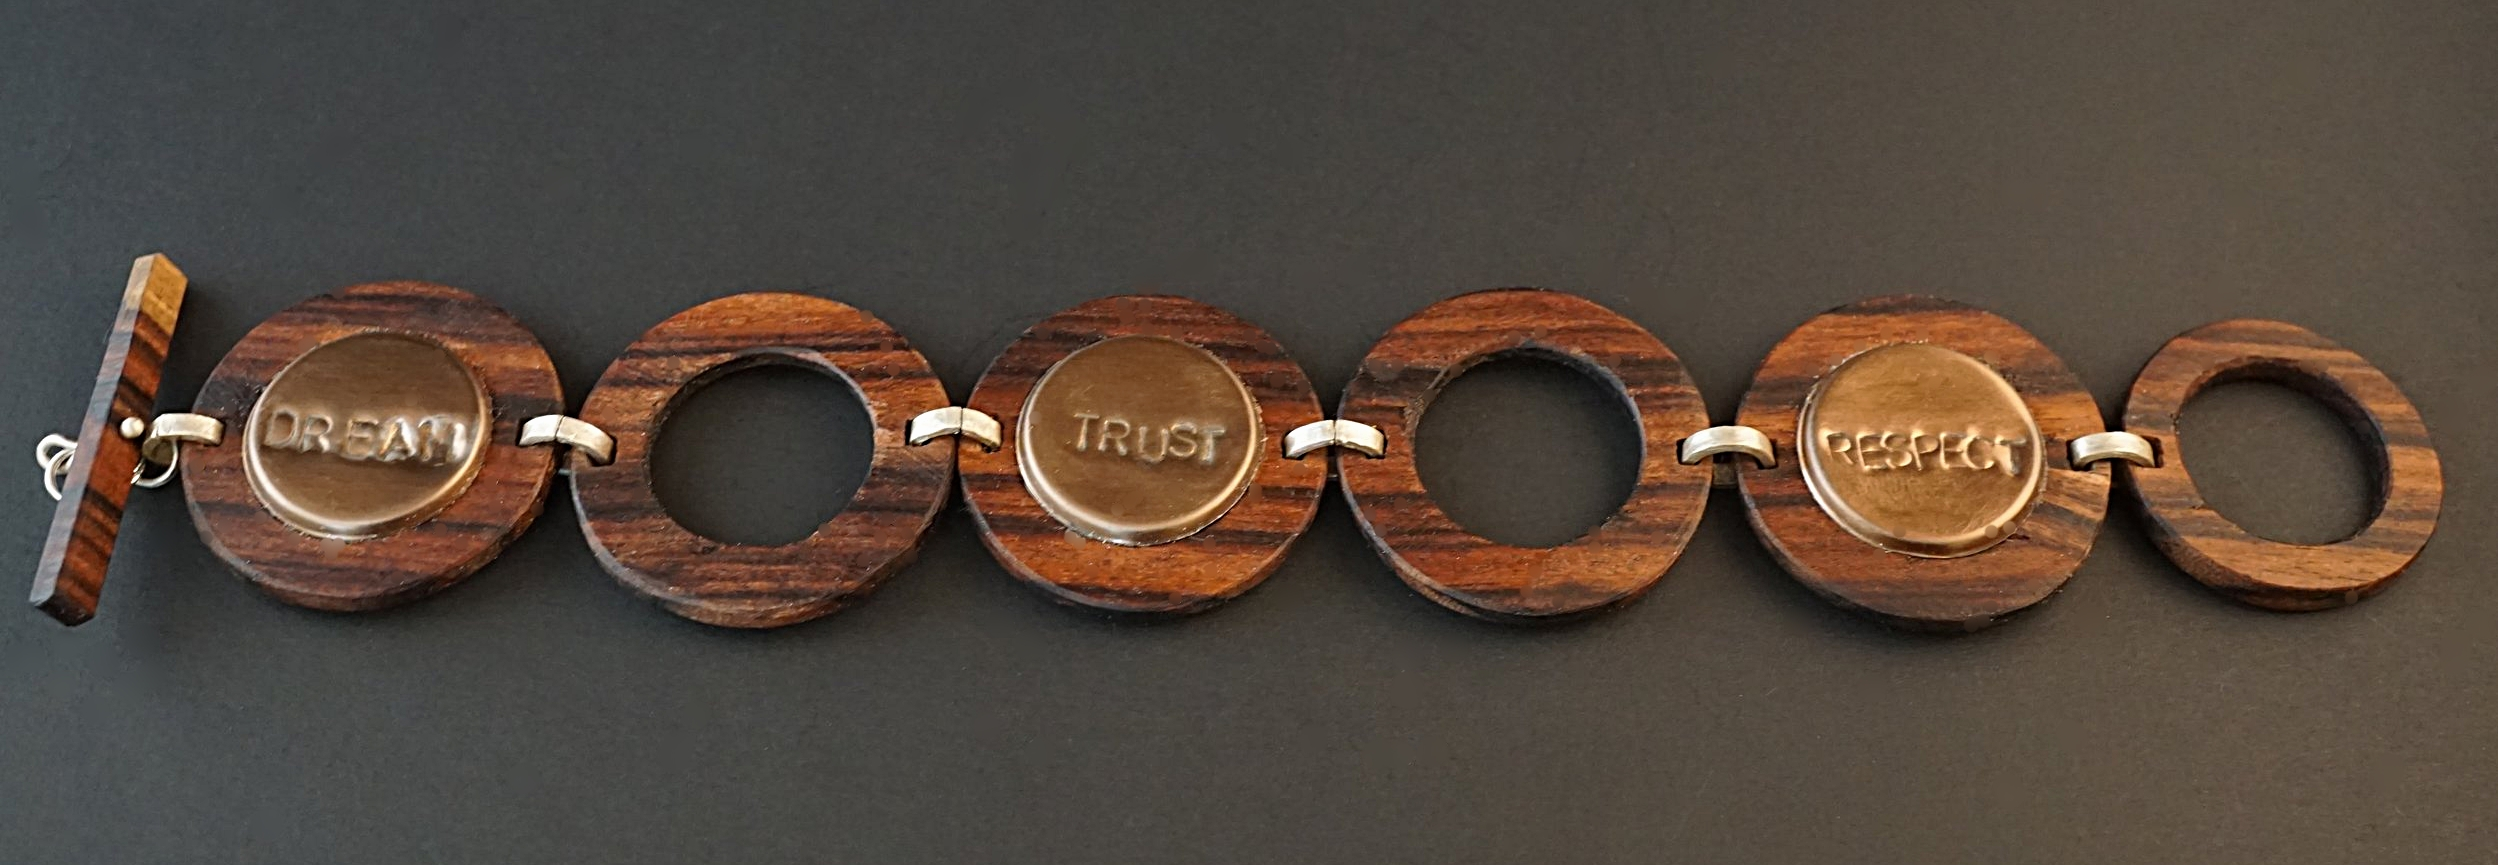 Bolivian Rosewood with hand stamped copper color tiles. Hand stamped with dream, trust, respect, family, faith, create